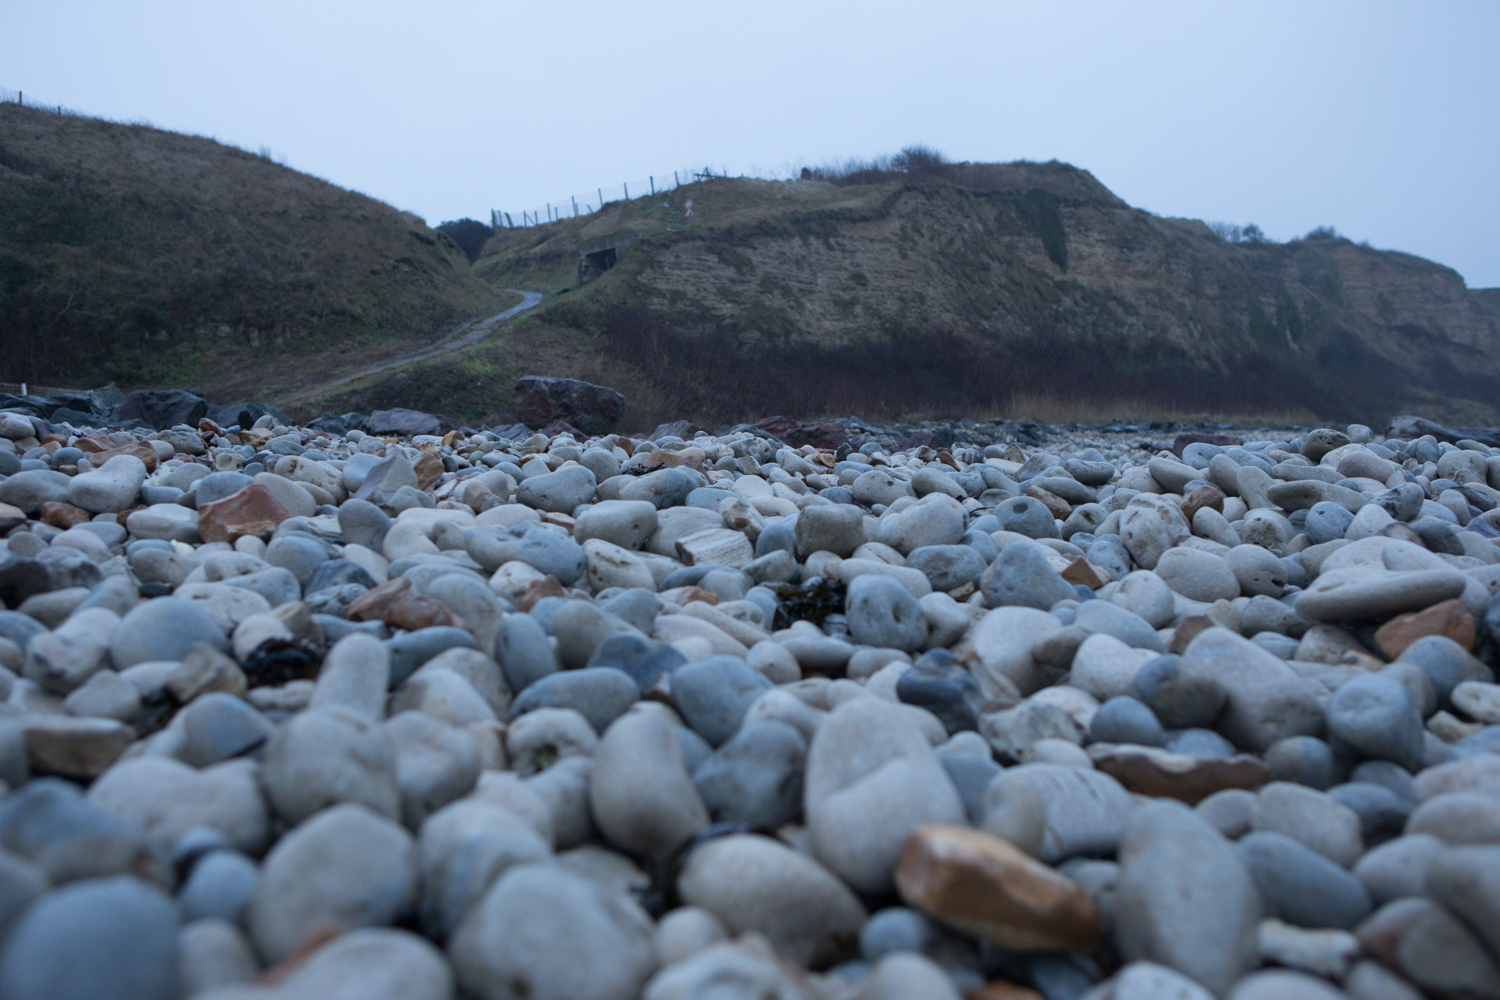 Omaha Beach: Shingle level view of the cliffs overlooking Omaha and part of the extensive defensive network. Right before the curve in the path off the beach there is a defensive position. These positions were often times placed to face parallel to the beach rather than facing the ocean. This made any fire from the position more difficult to spot from the sea side and harder for off-shore batteries to target. )Part of Omaha is what is referred to as a shingle beach (i.e. covered in rocks).)